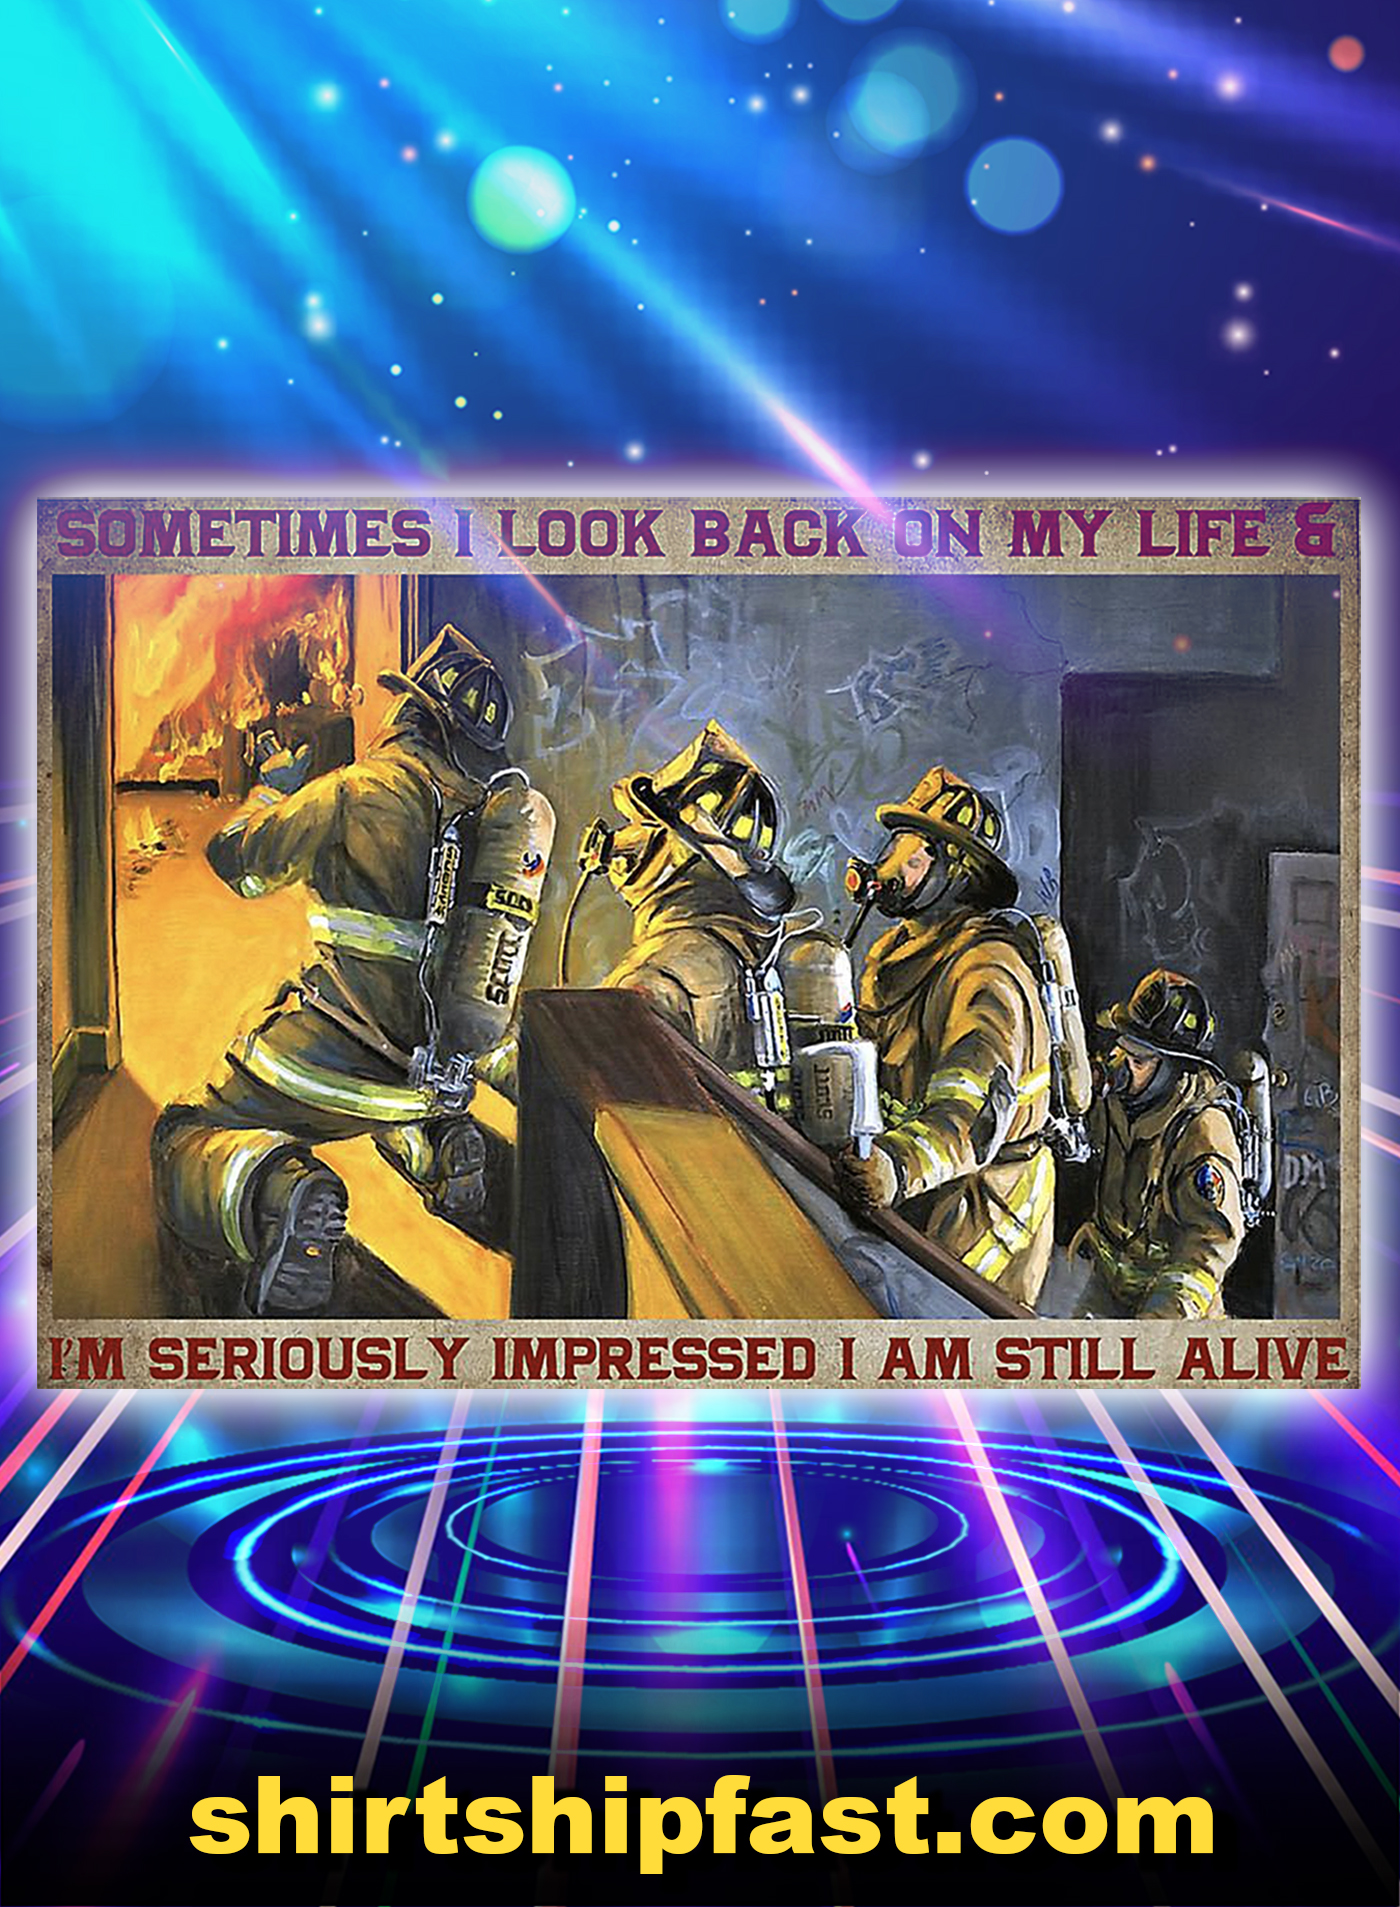 Firefighter sometimes i look back on my life poster - A1